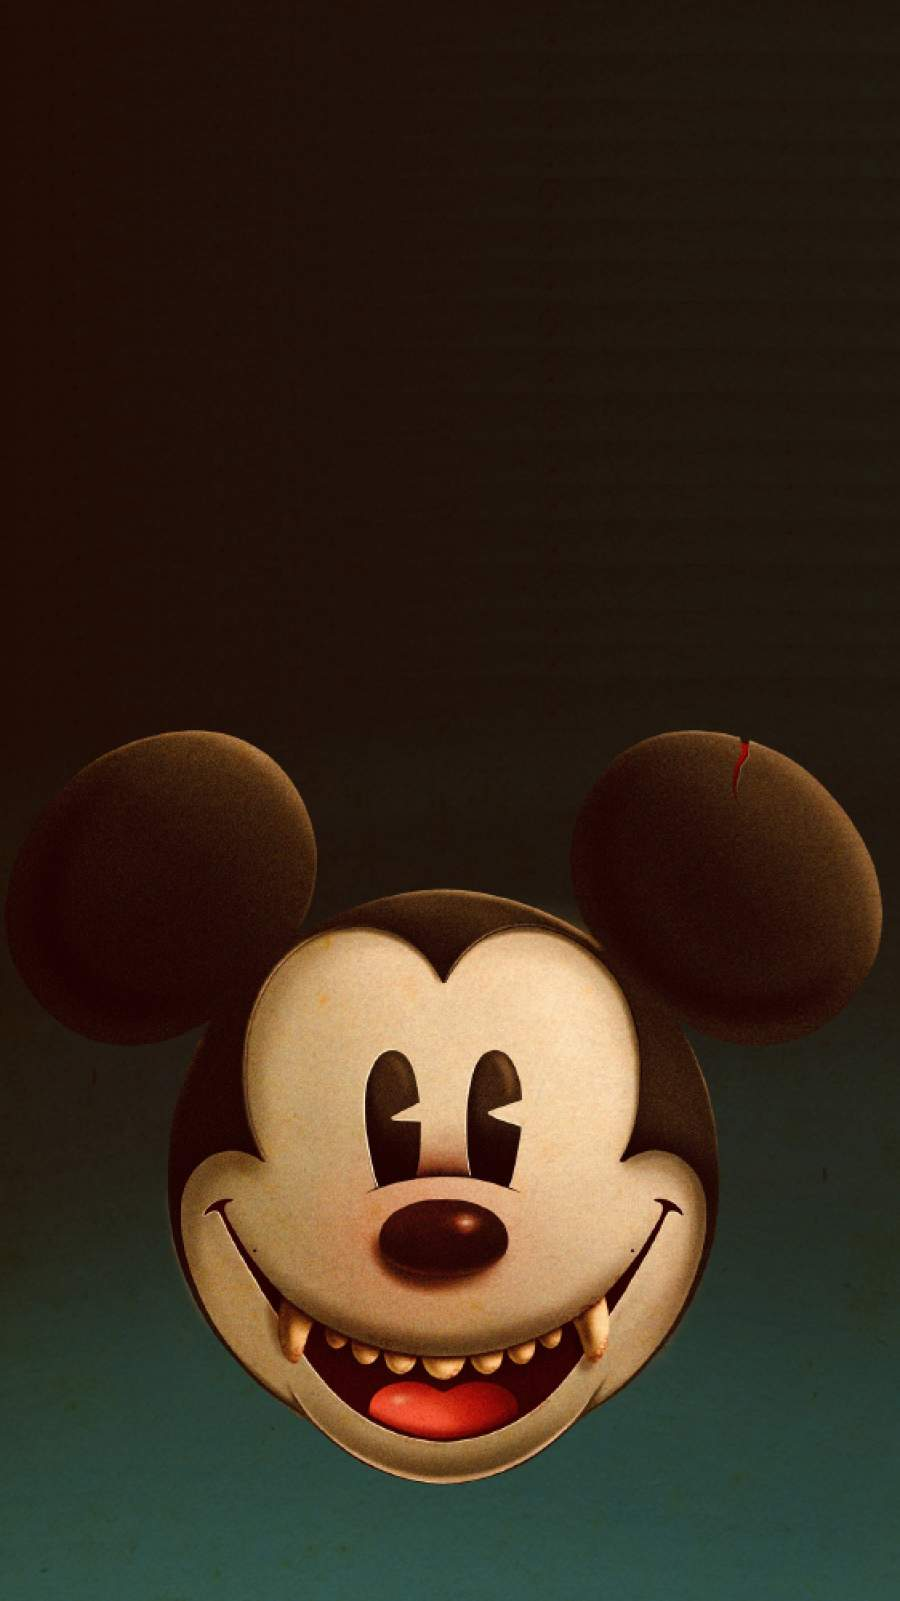 Mickey Mouse Halloween iPhone Wallpaper